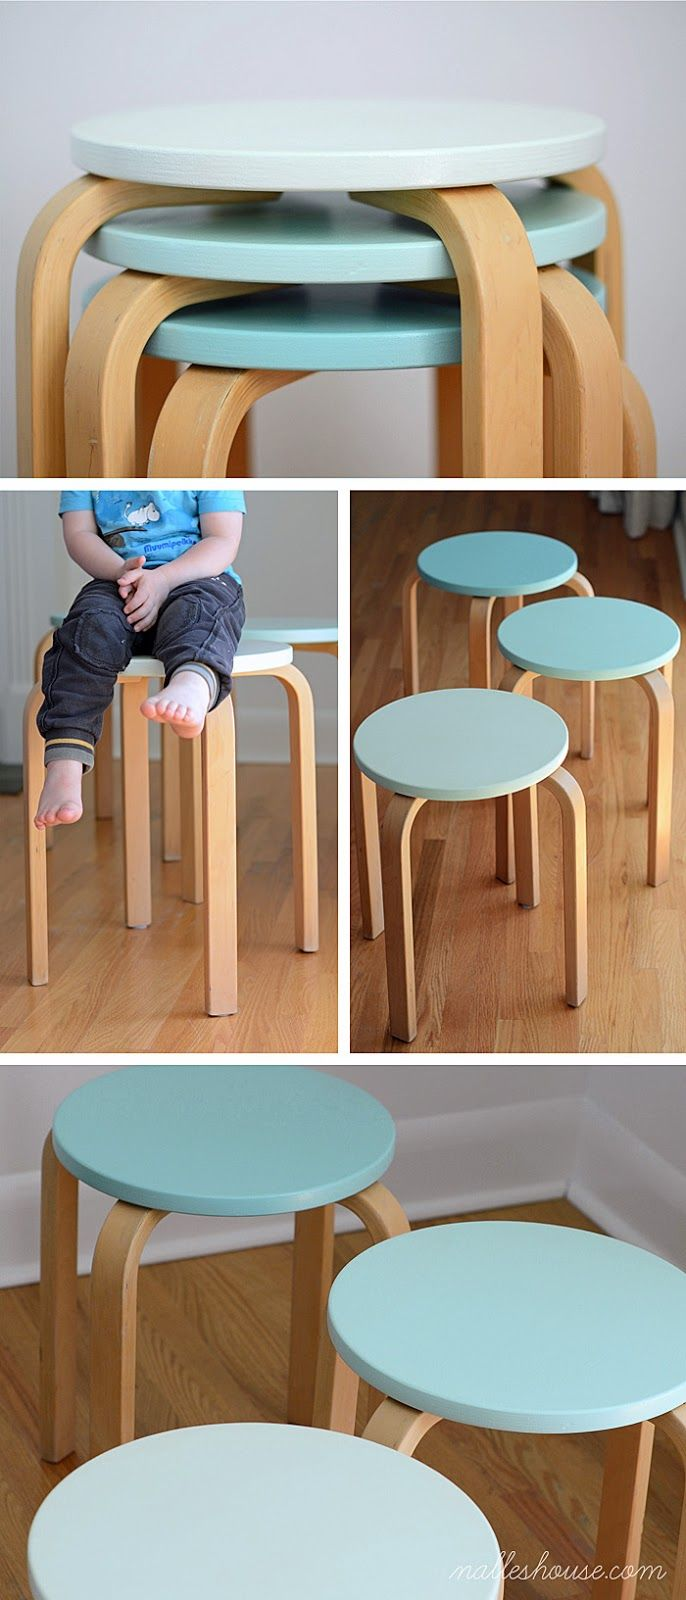 IKEA STOOLS - PAINTED IN SHADES OF MINT...awesome at room side to pull out when entertaining.